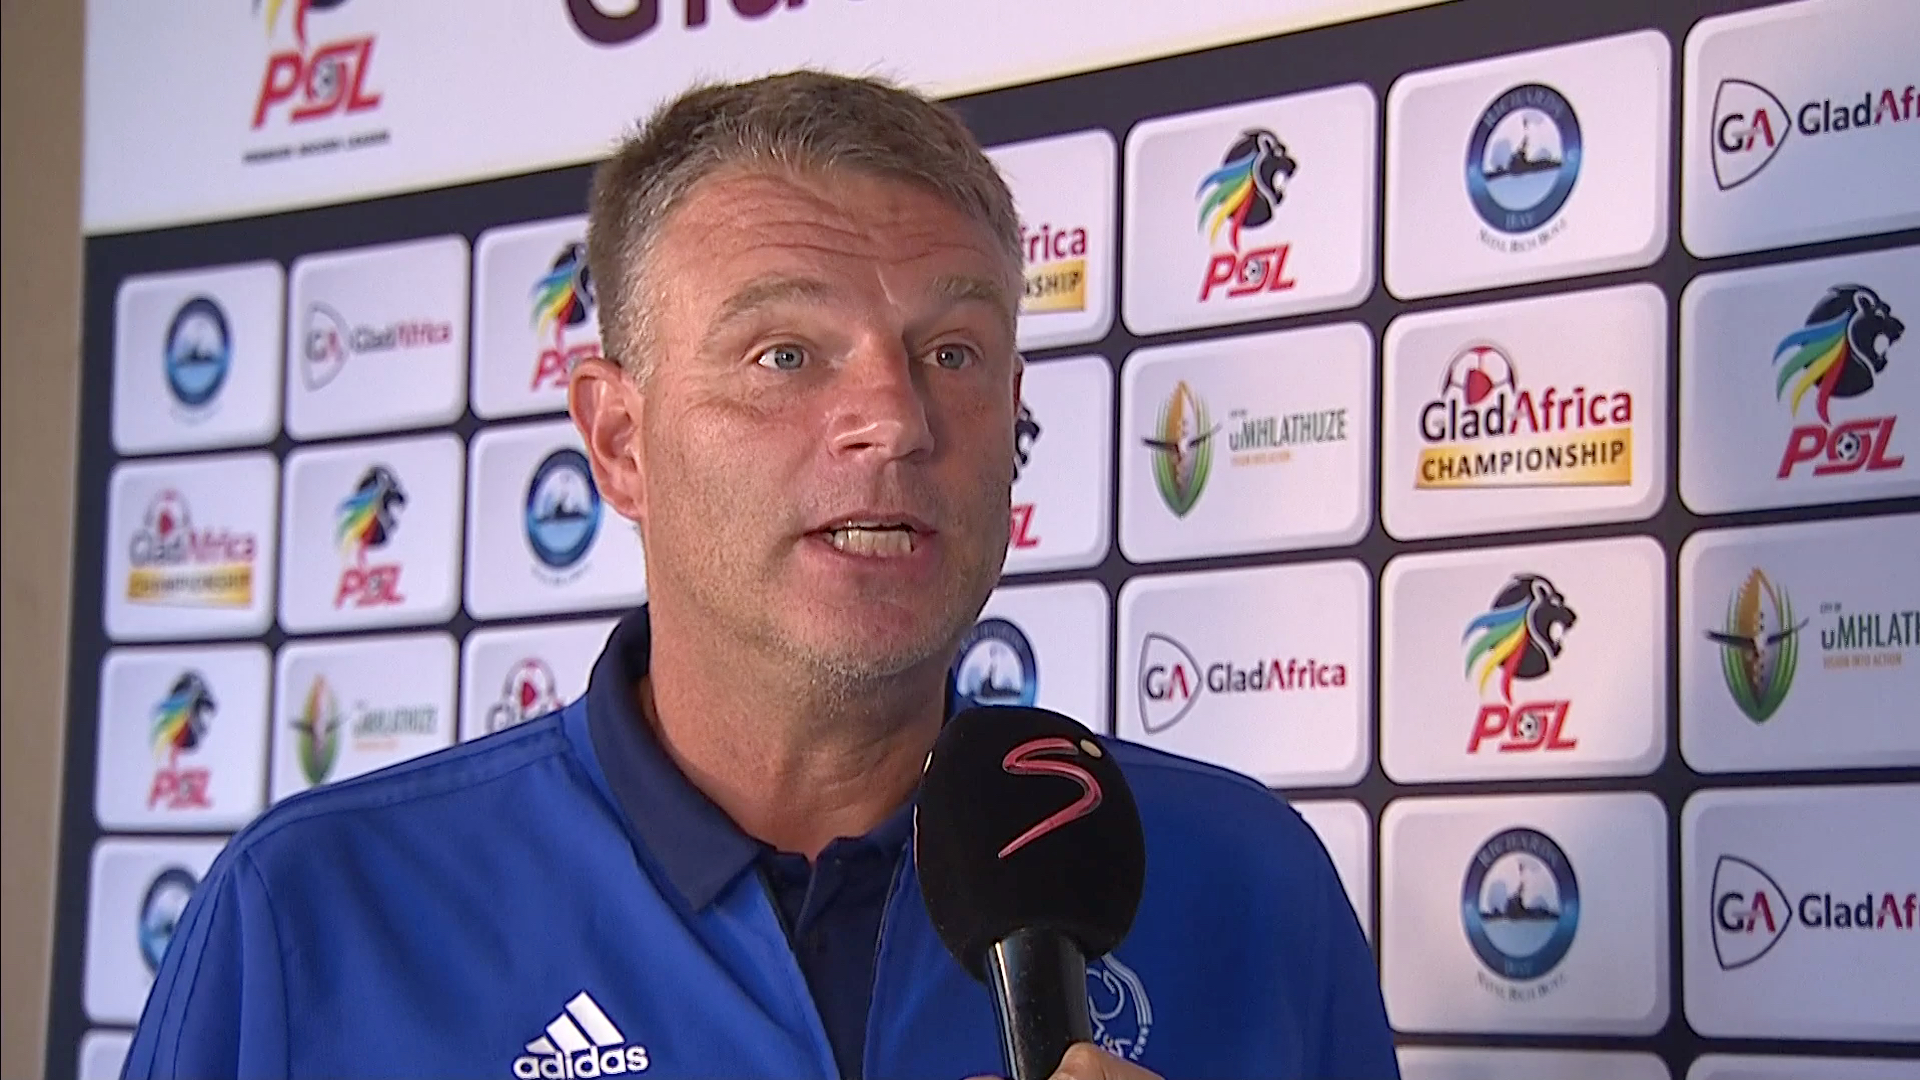 GladAfrica Championship | R Bay v Ajax CT | Post-match interview with Andries Ulderink